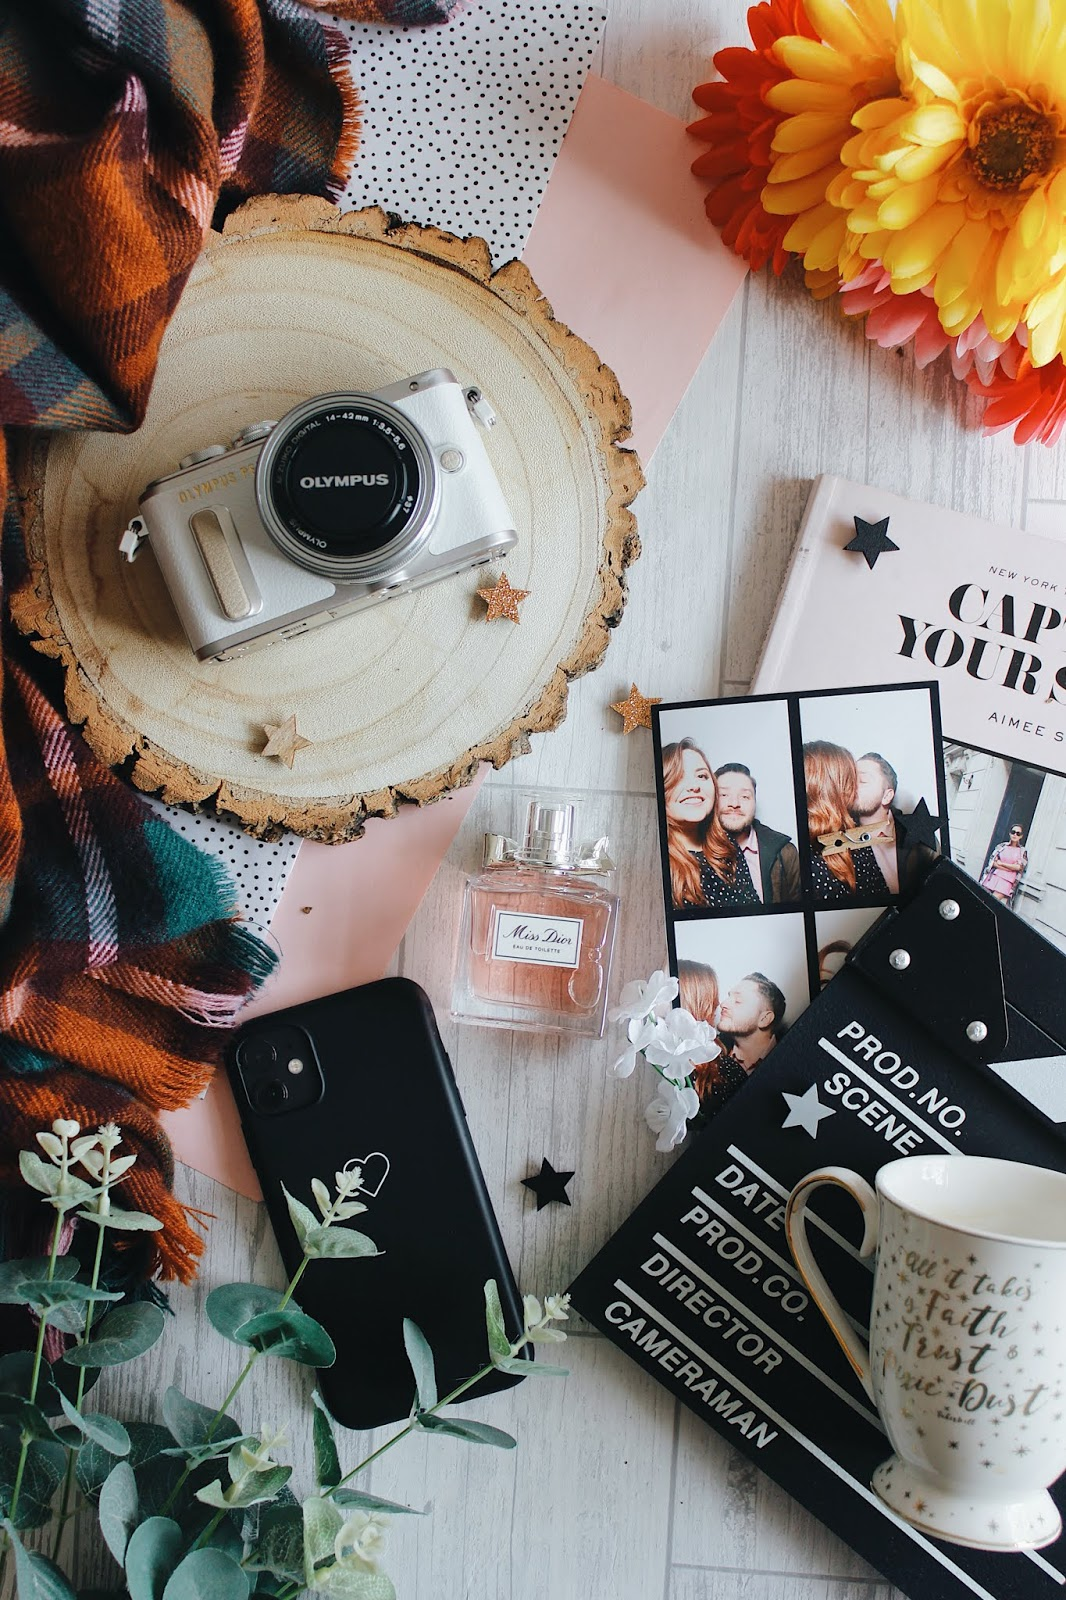 how i improved my instagram in 6 months - see the stars